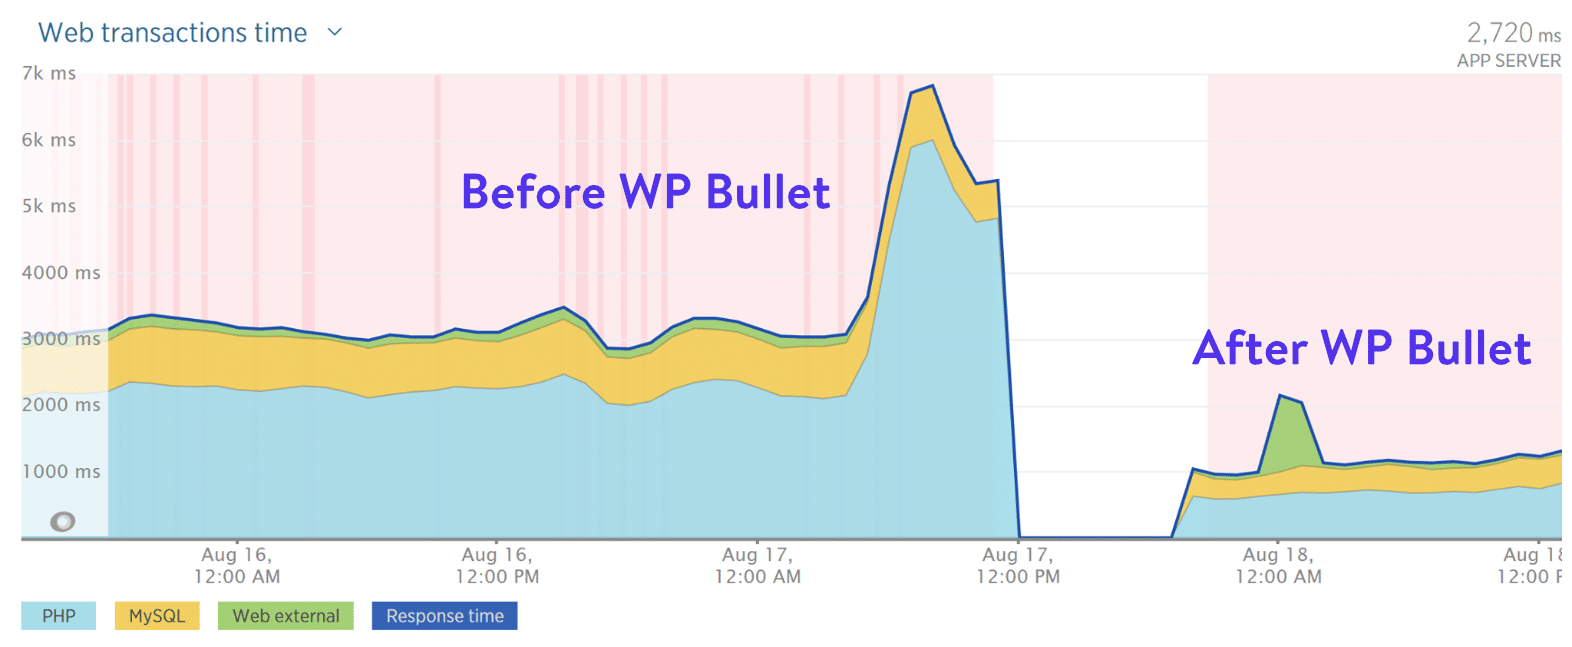 "Before and After WP Bullet"" width=""1572"" height=""647"" srcset=""https://webypress.fr/wp-content/uploads/2019/08/1566286023_160_Comment-accelerer-votre-site-WordPress-Guide-Ultimate-2019.png 1572w, https://kinsta.com/wp-content/uploads/2018/07/before-after-wp-bullet-300x123.png 300w, https://kinsta.com/wp-content/uploads/2018/07/before-after-wp-bullet-768x316.png 768w, https://kinsta.com/wp-content/uploads/2018/07/before-after-wp-bullet-1024x421.png 1024w, https://kinsta.com/wp-content/uploads/2018/07/before-after-wp-bullet-610x251.png 610w"" sizes=""(max-width: 1572px) 100vw, 1572px"